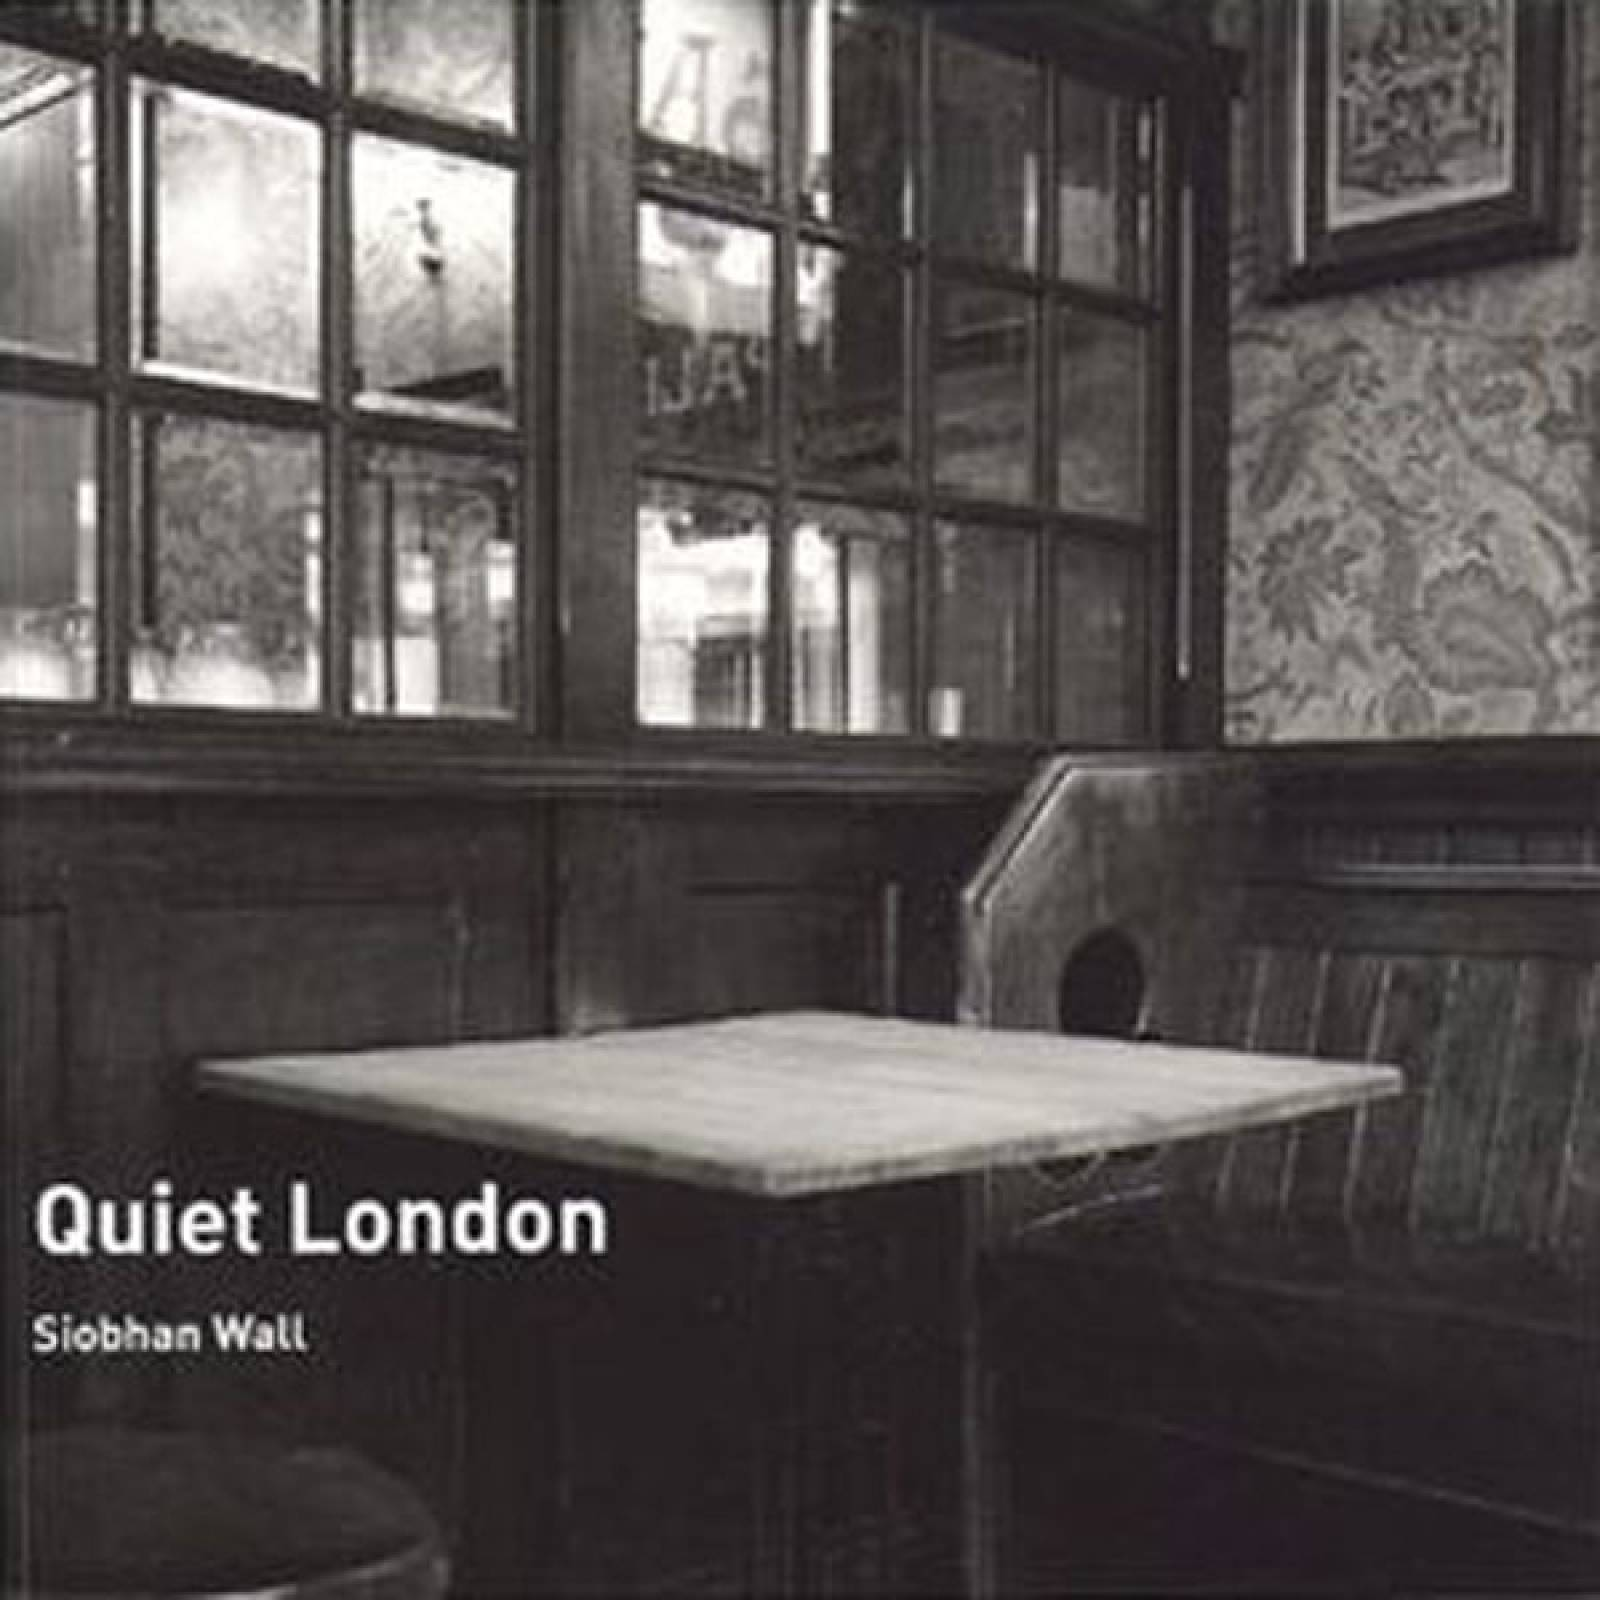 Quiet London Book By Siobhan Wall.